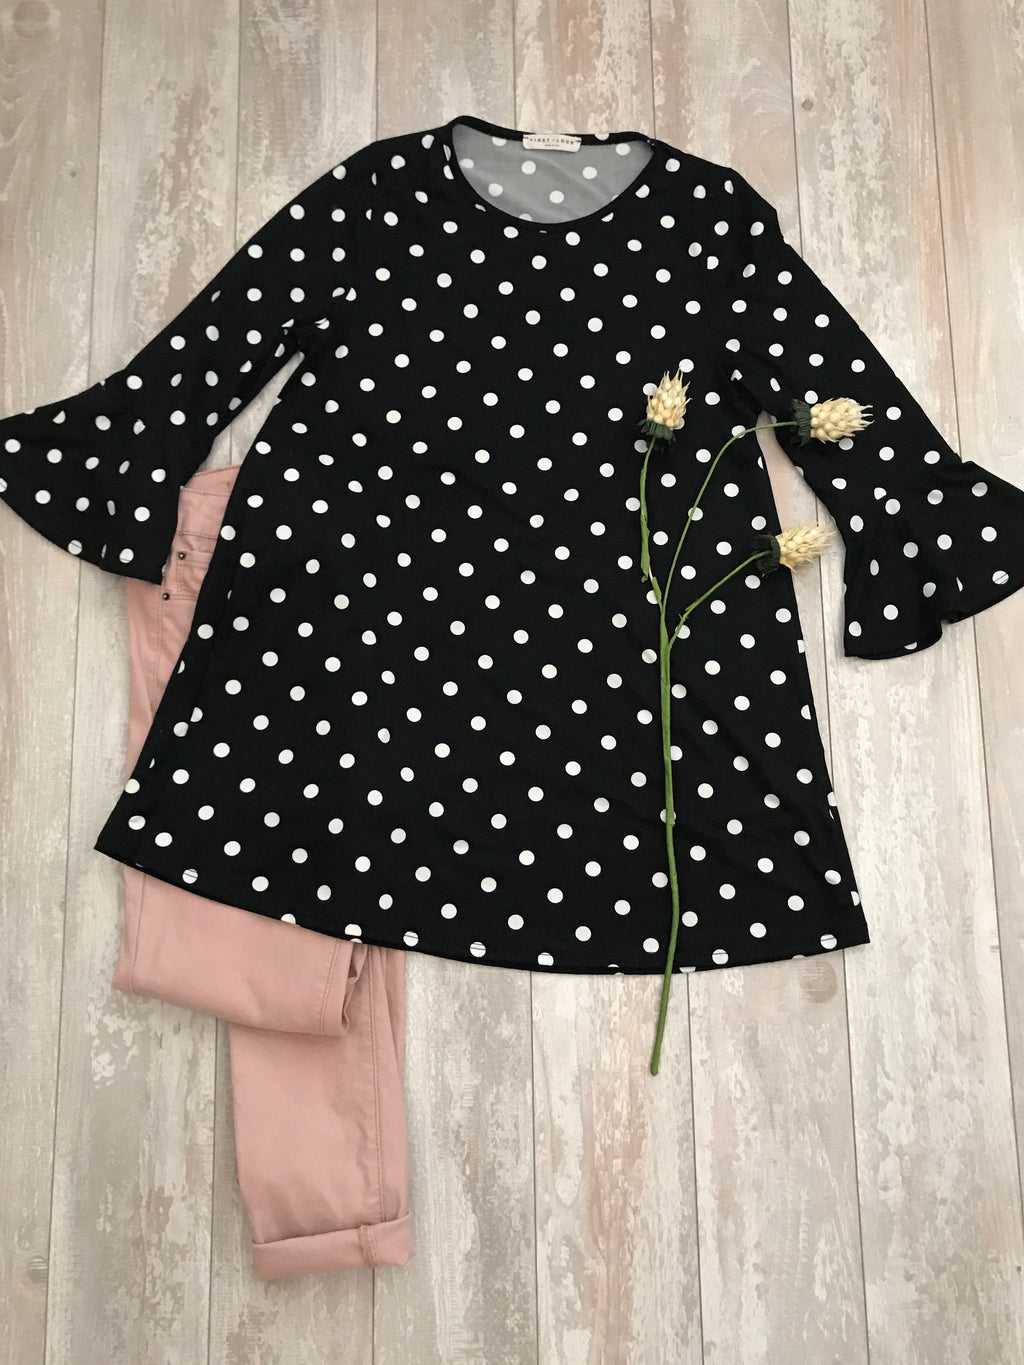 Dancing Dots Top